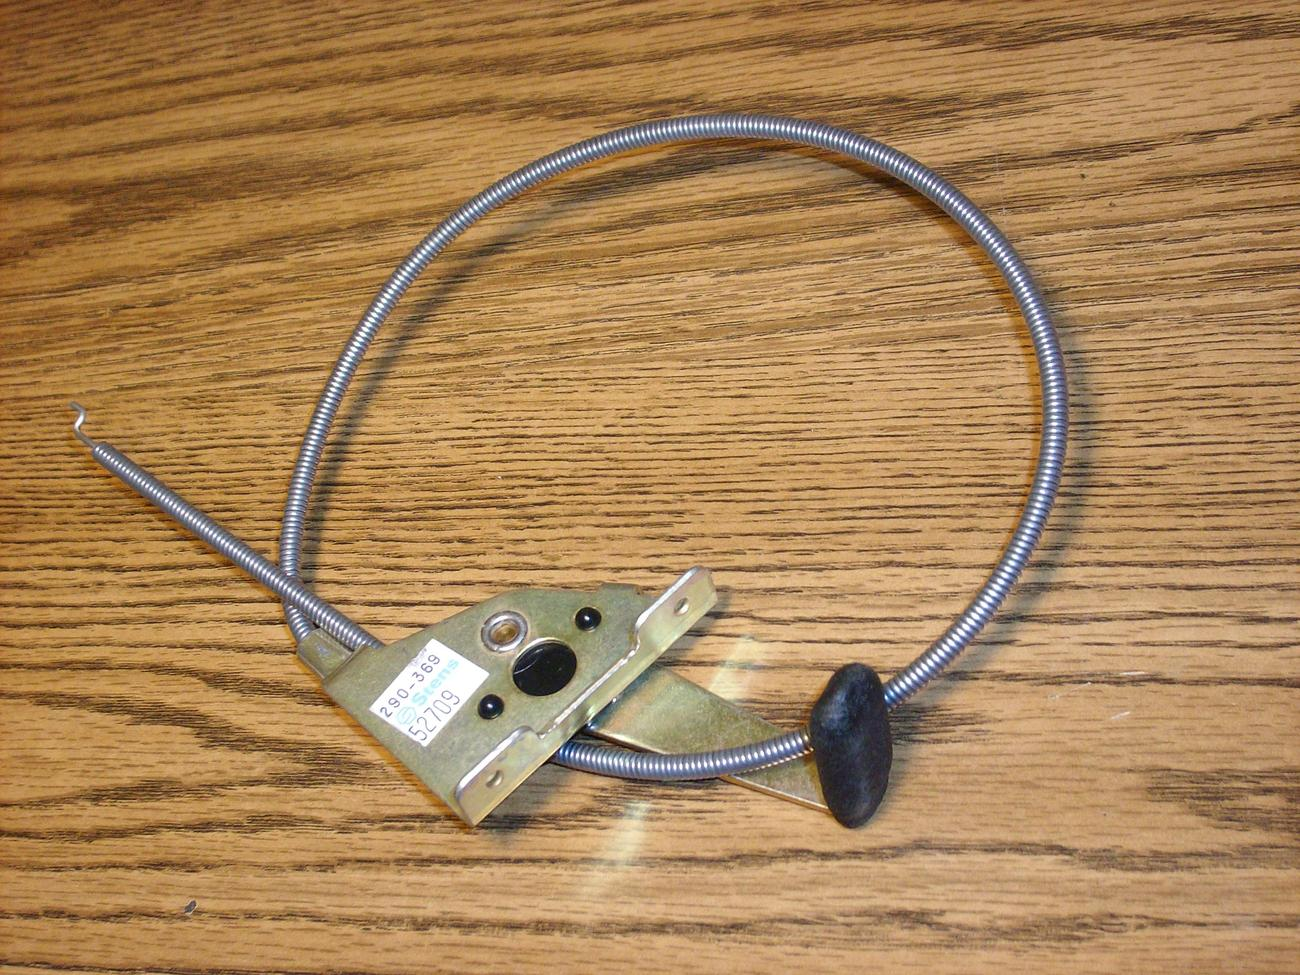 Tractor Throttle Control : Throttle control cable for murray riding lawn mower